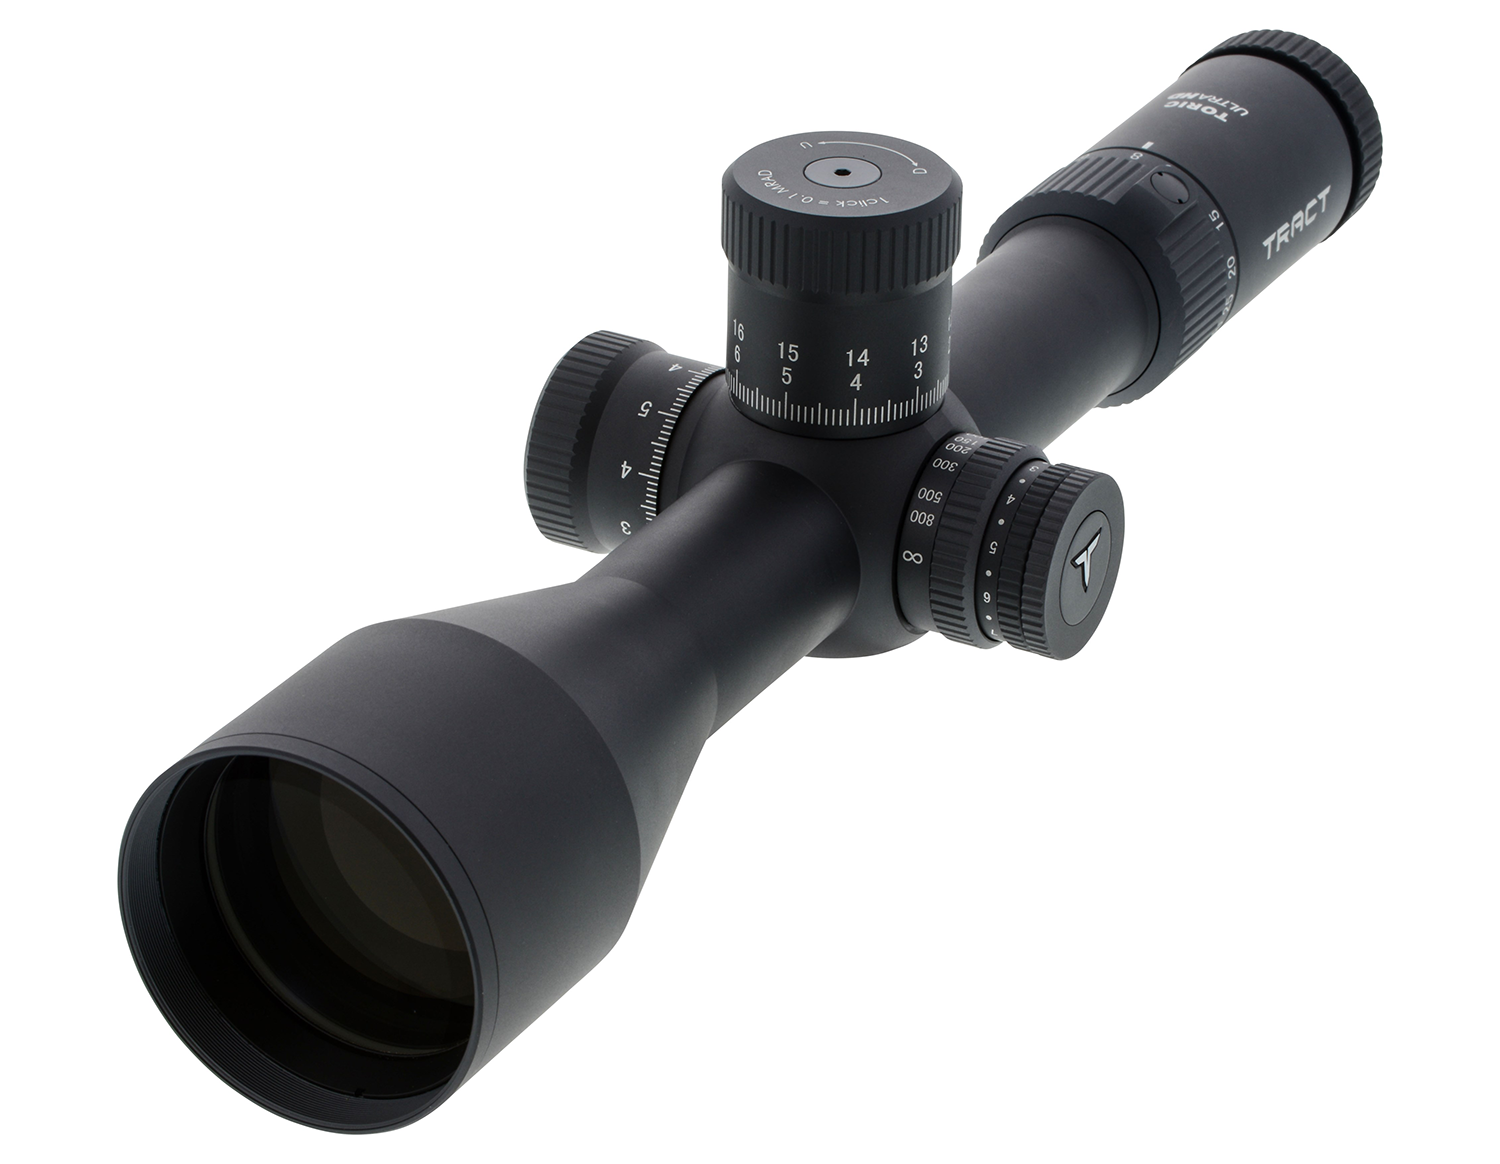 Tract Toric UHD 4.5-30x56 riflescope on a white background.